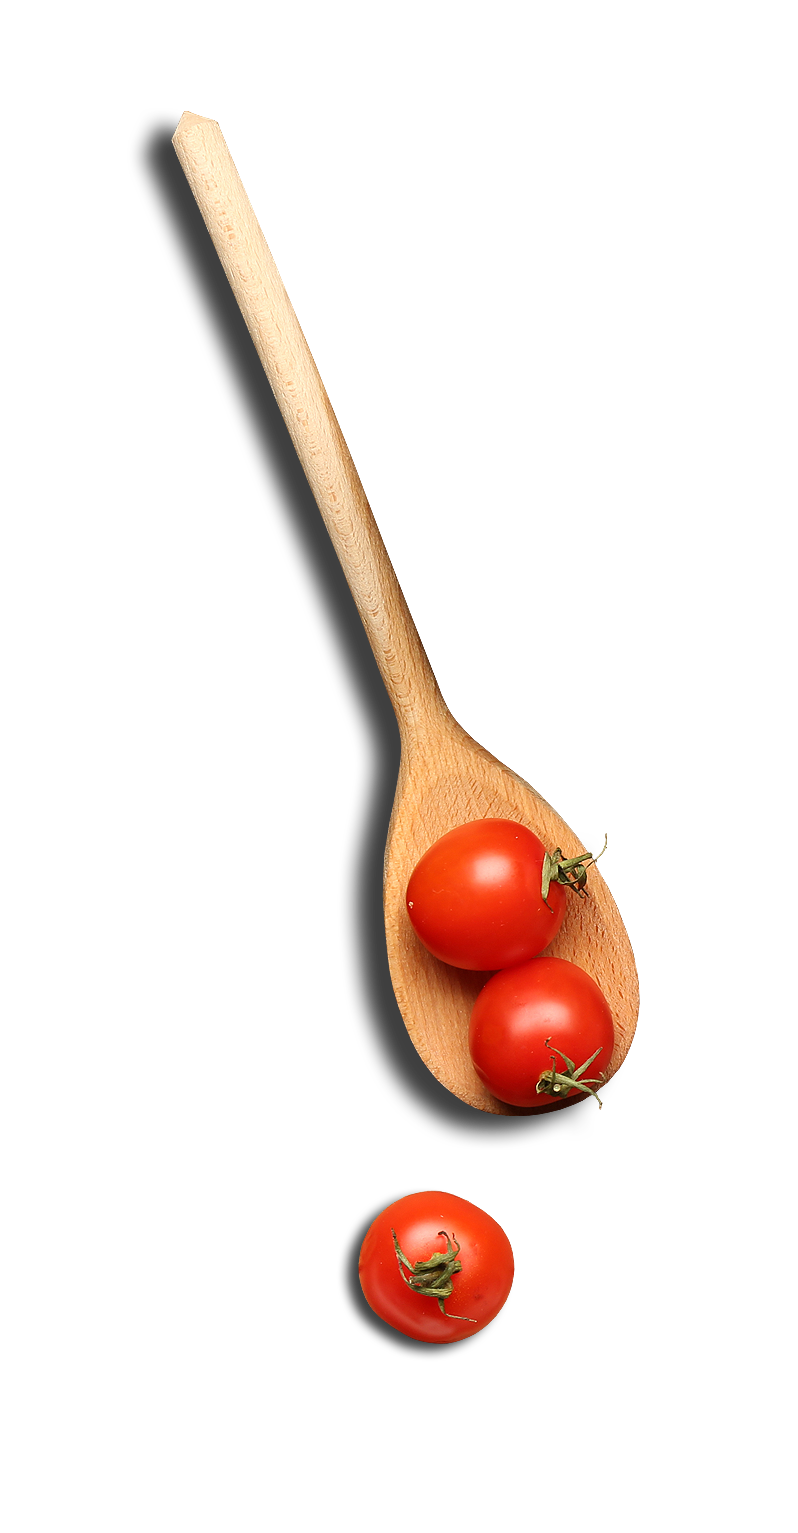 And Google Wooden Cherry Spoon Images Tomatoes PNG Image